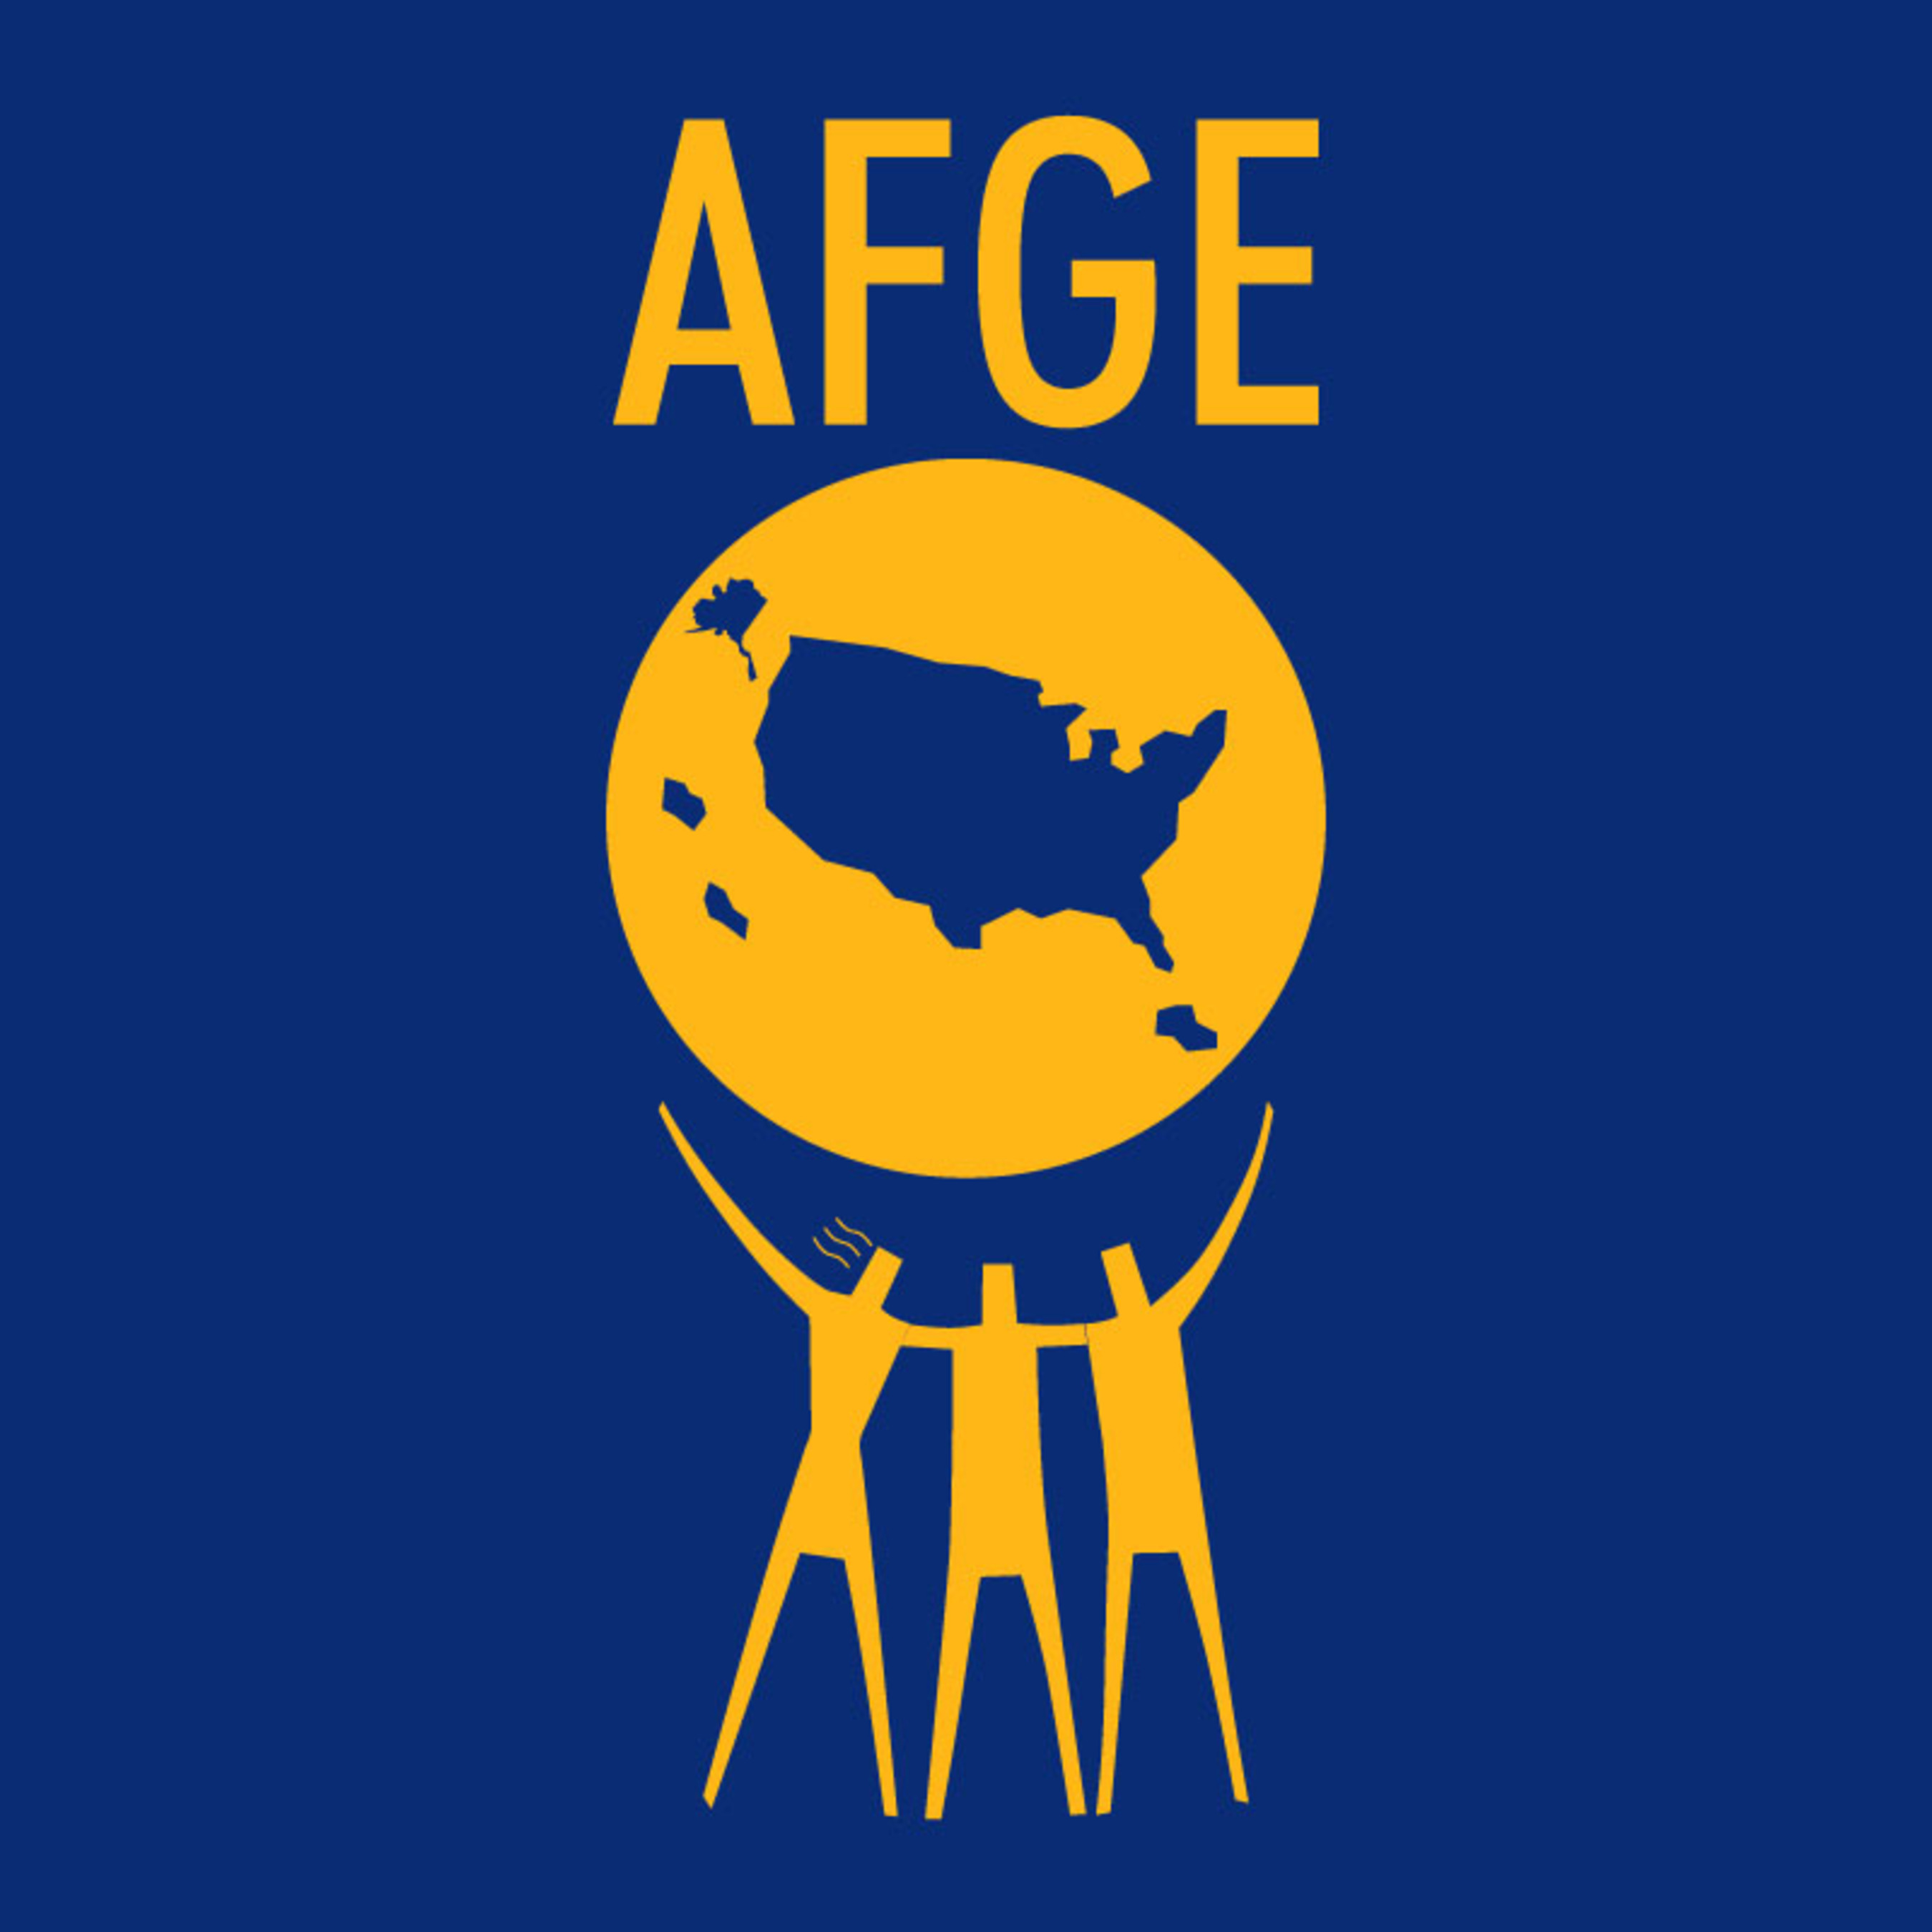 AFGE files Class Action Lawsuit against OPM Officials over Data Breach